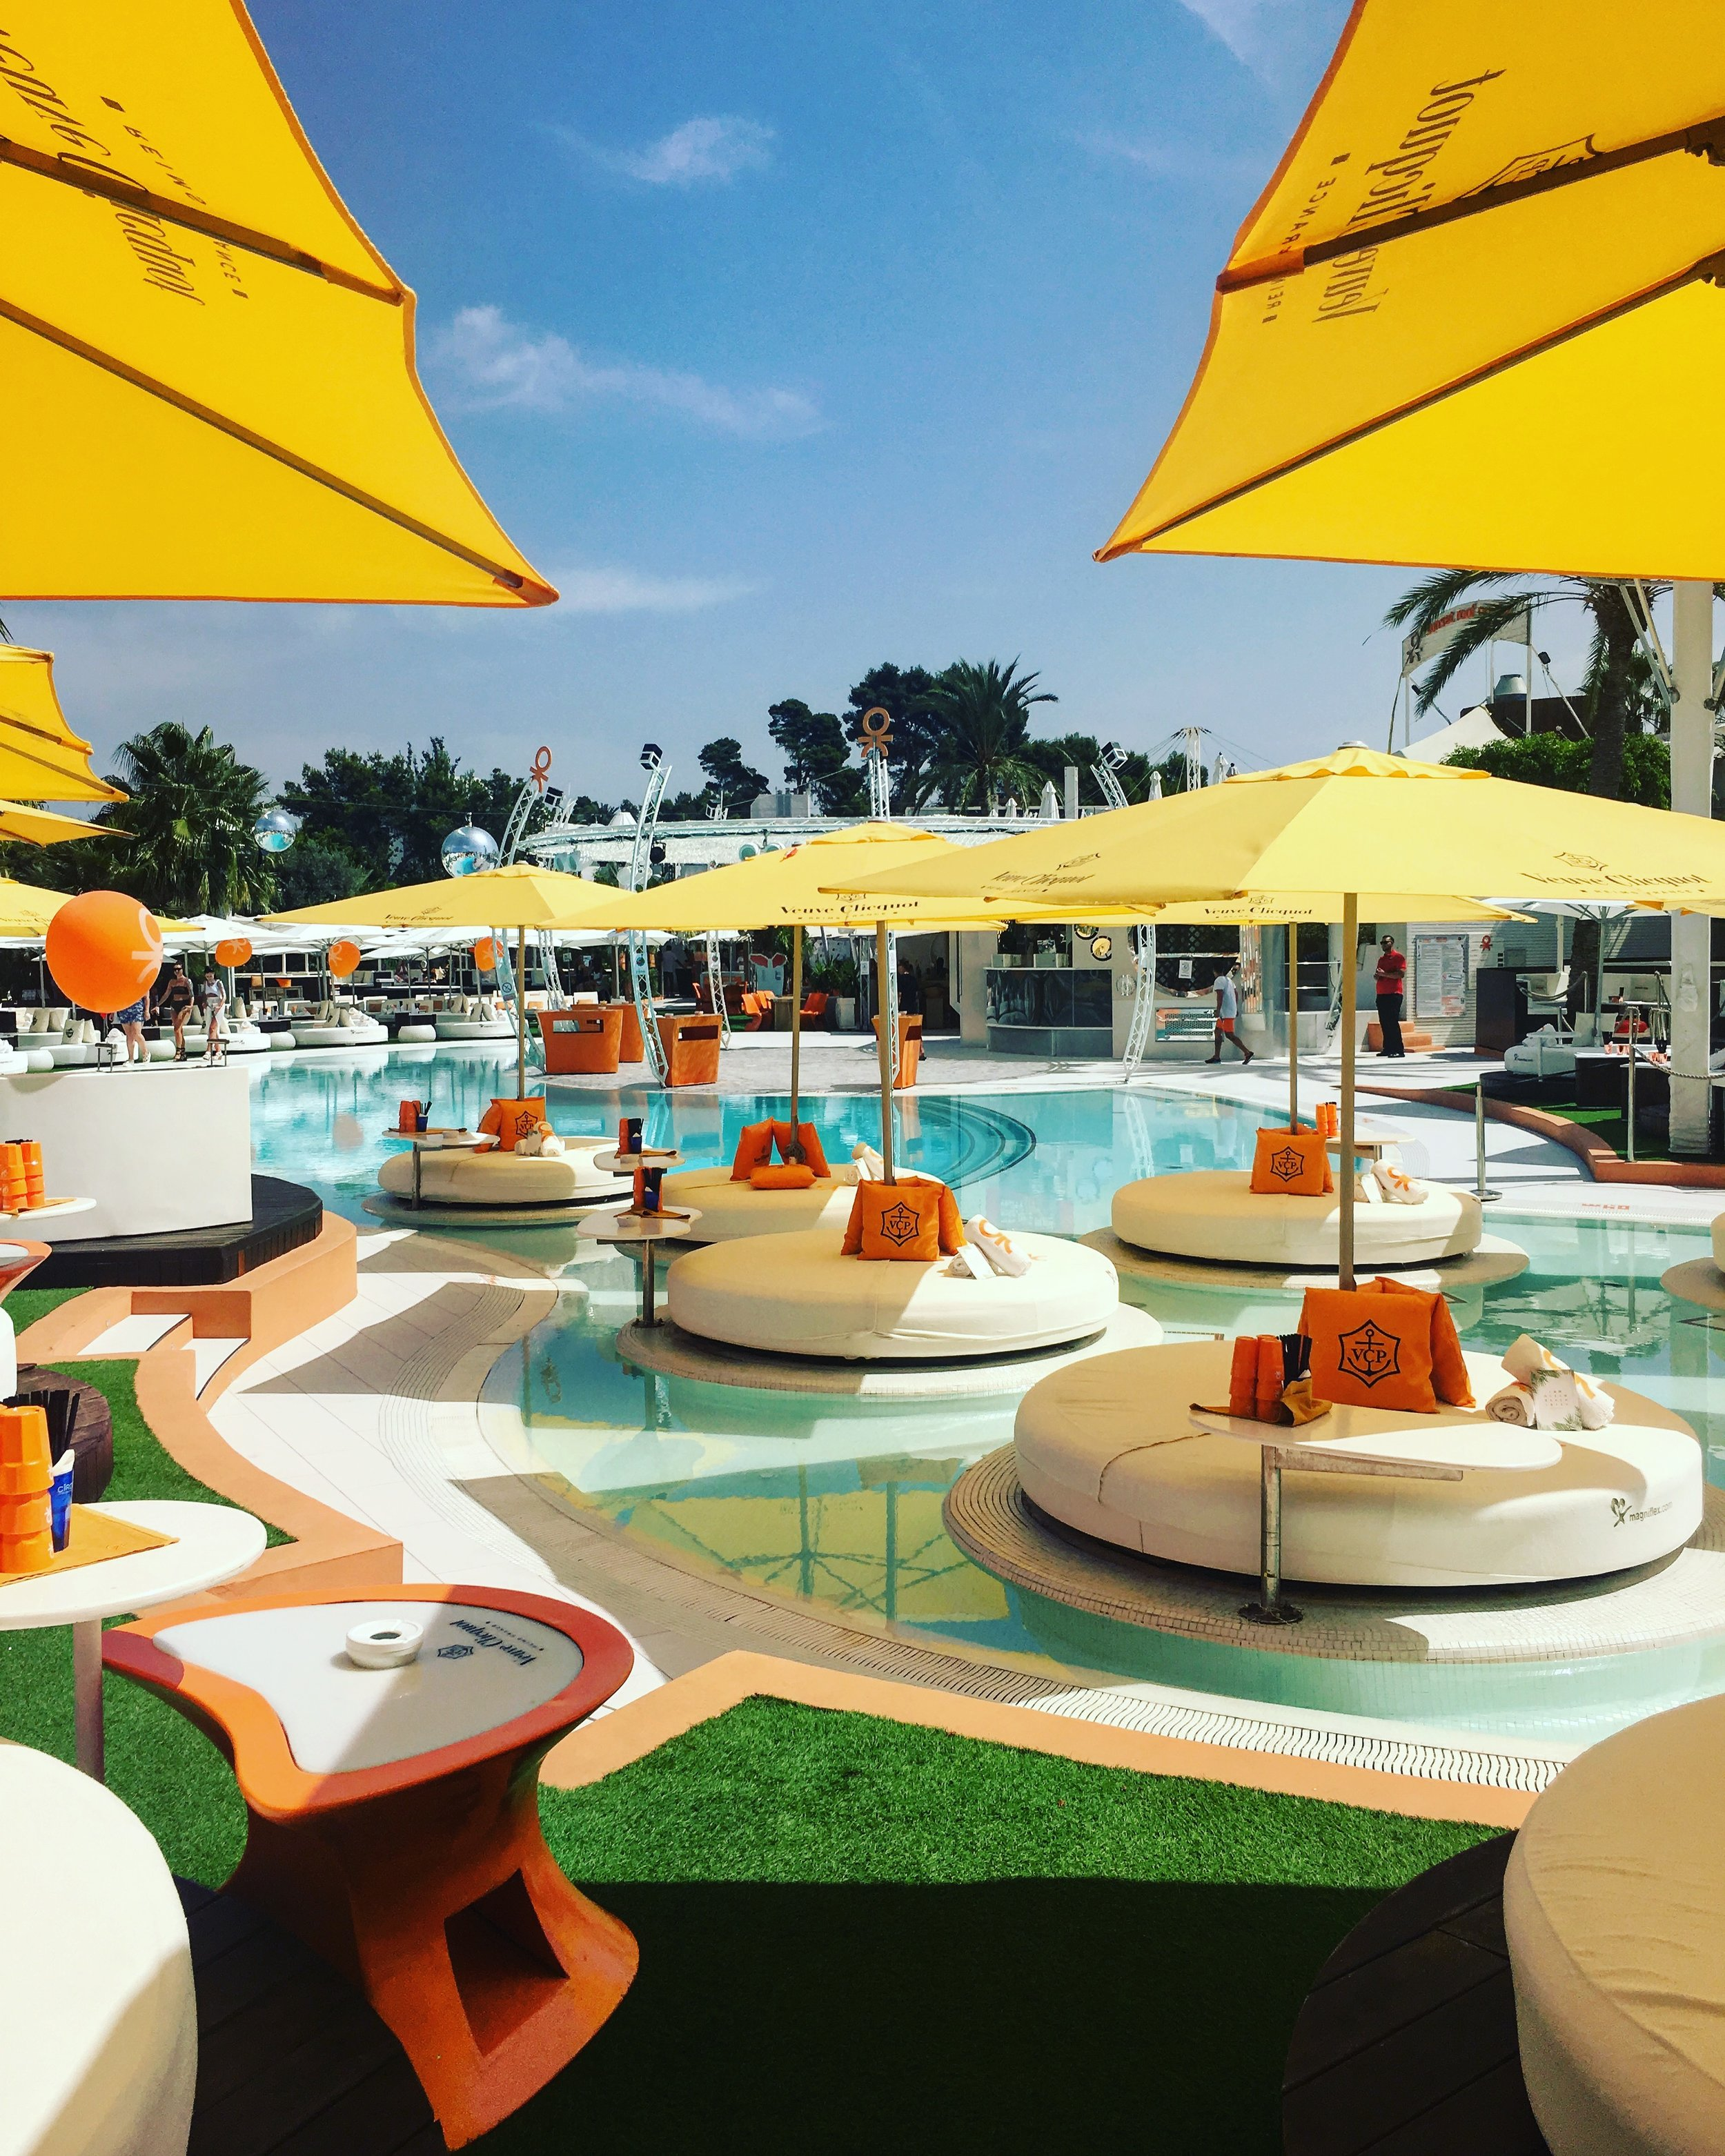 Pool Parties & Beach Clubs -